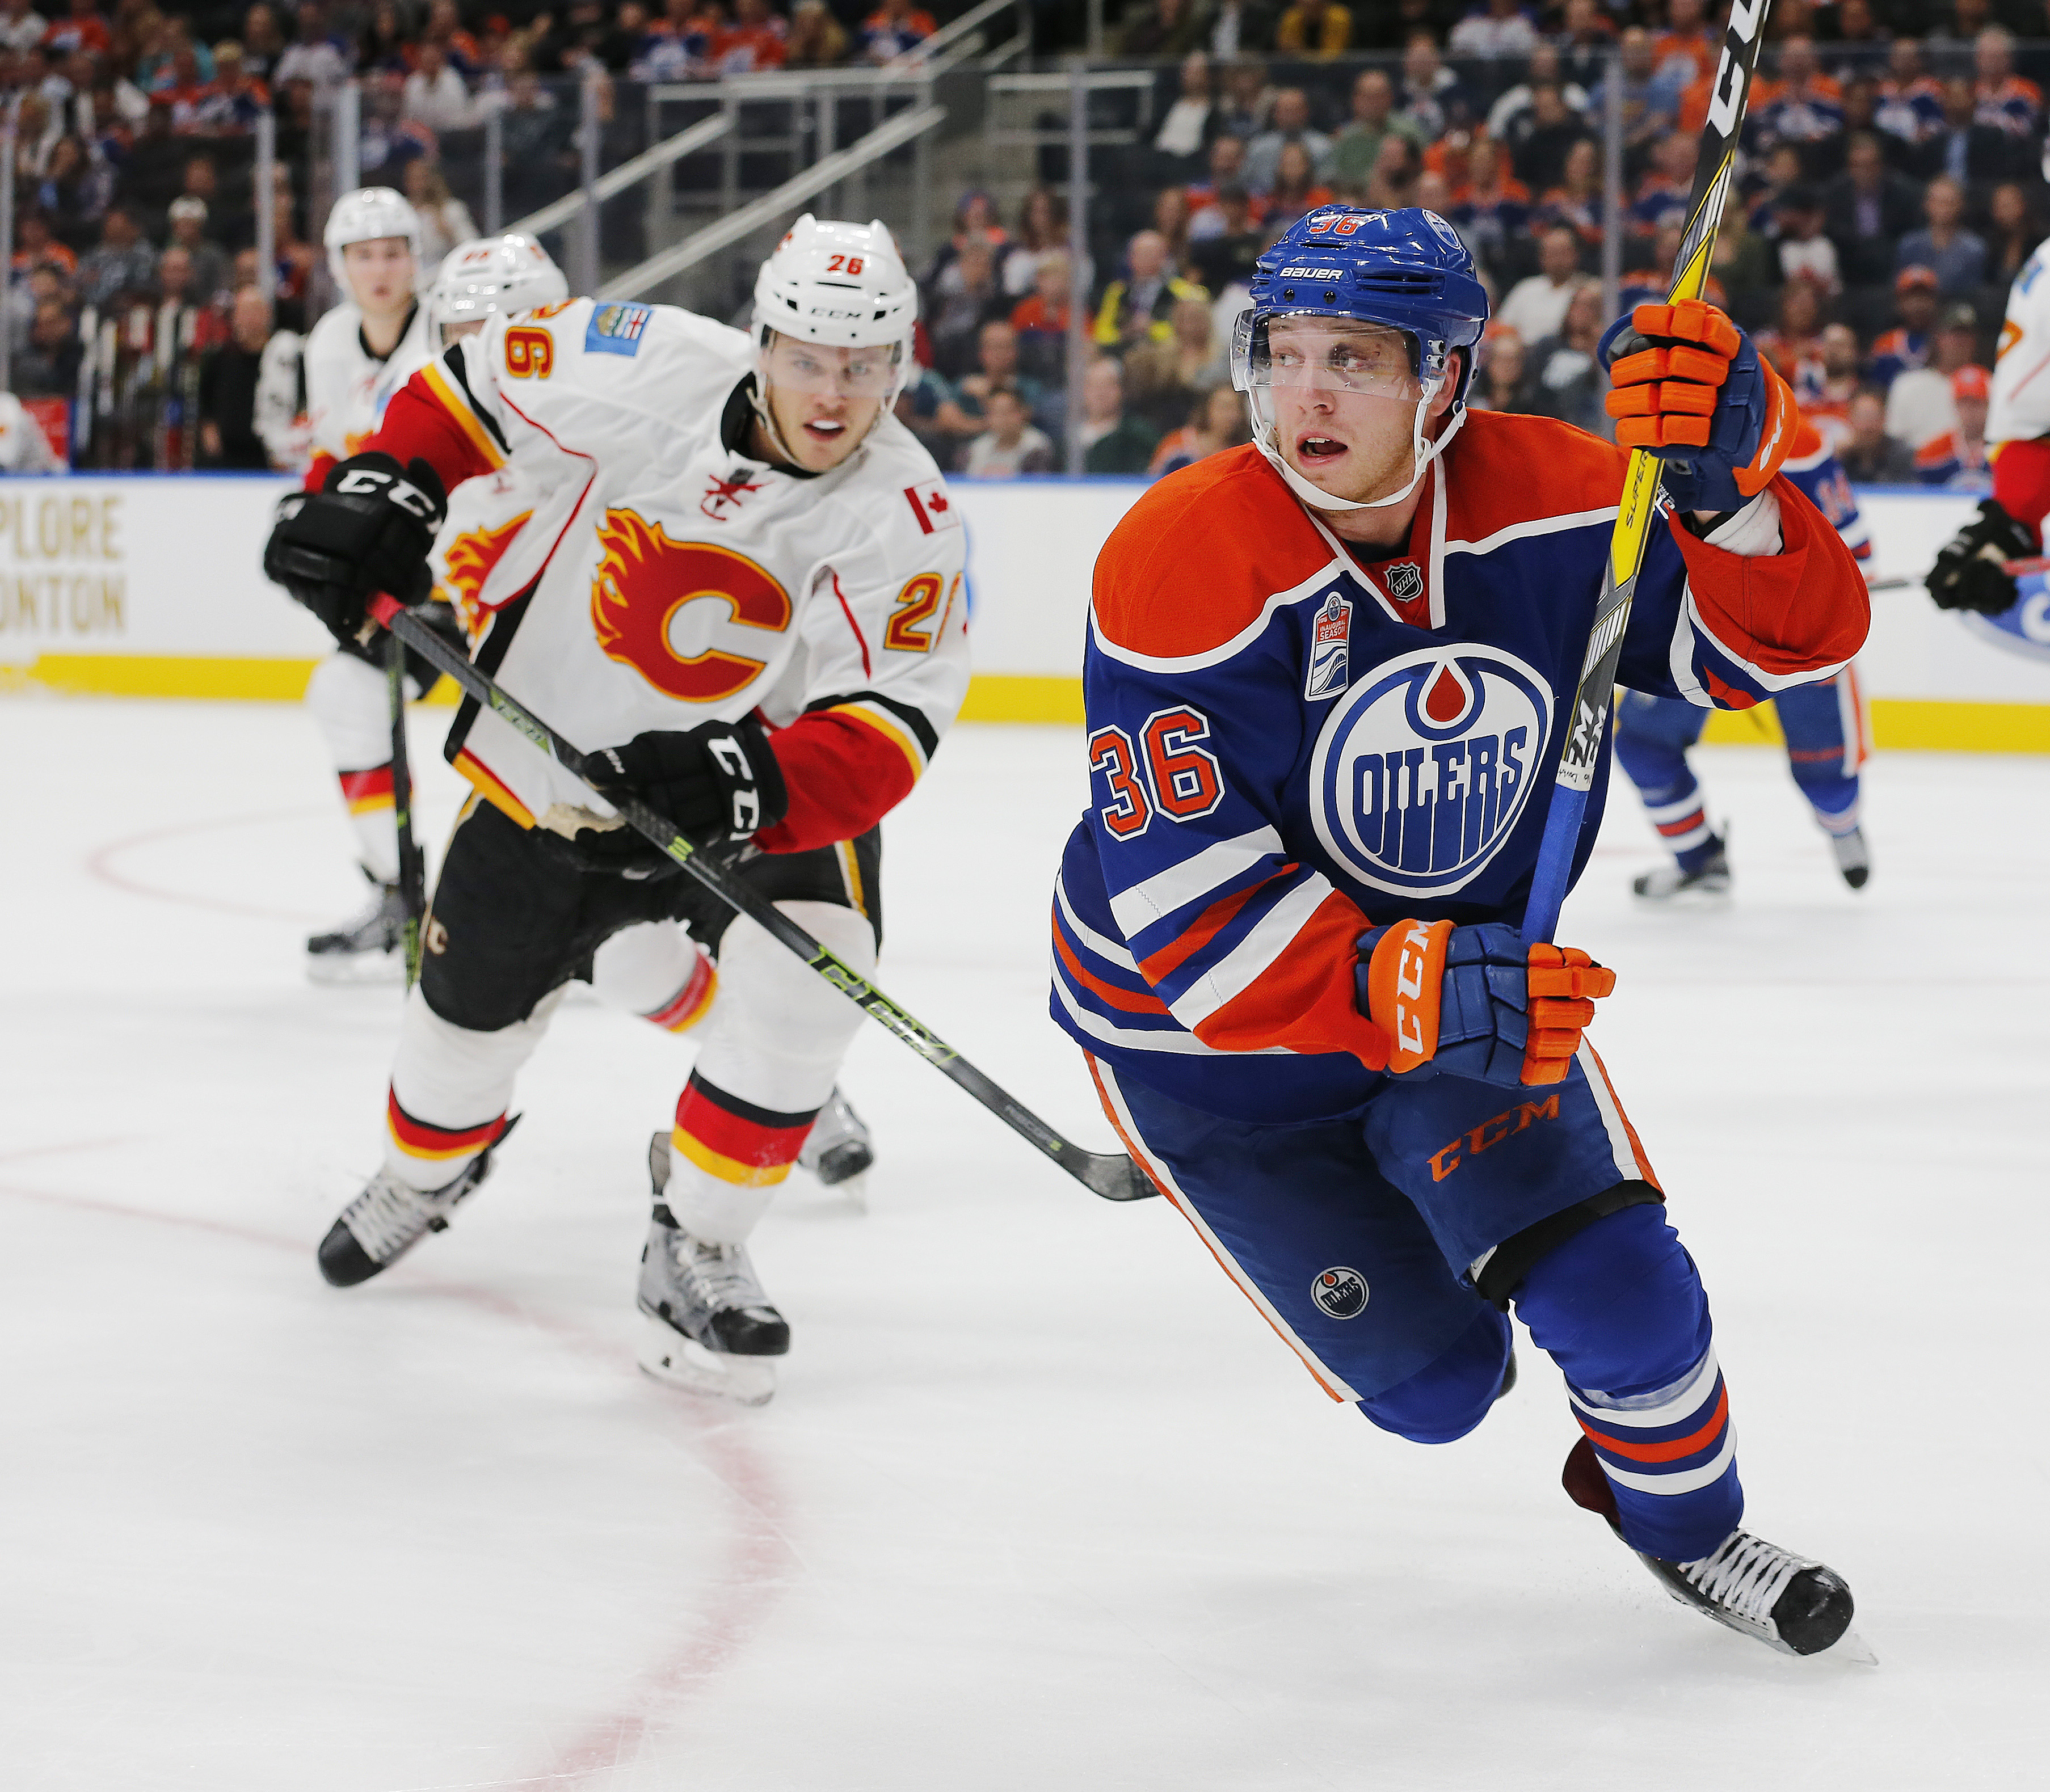 Drake Caggiula will play with Kris Versteeg and Patrick Maroon tonight in Vancouver.